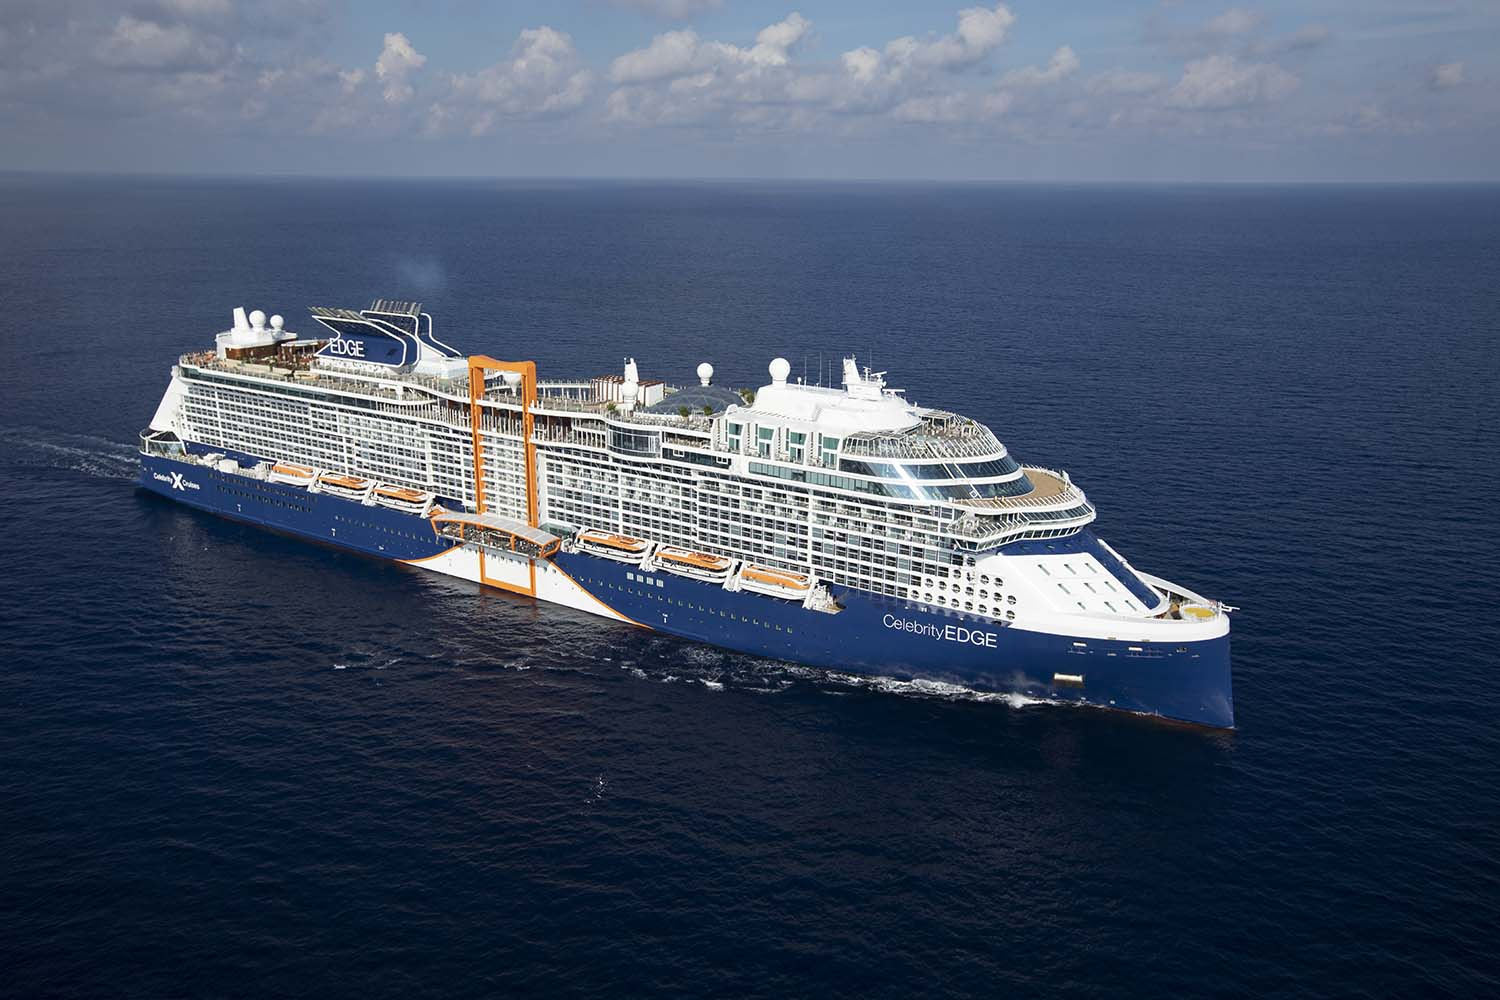 Celebrity Edge, EG, Aerial, ship exterior, water, ship, open ocean, views